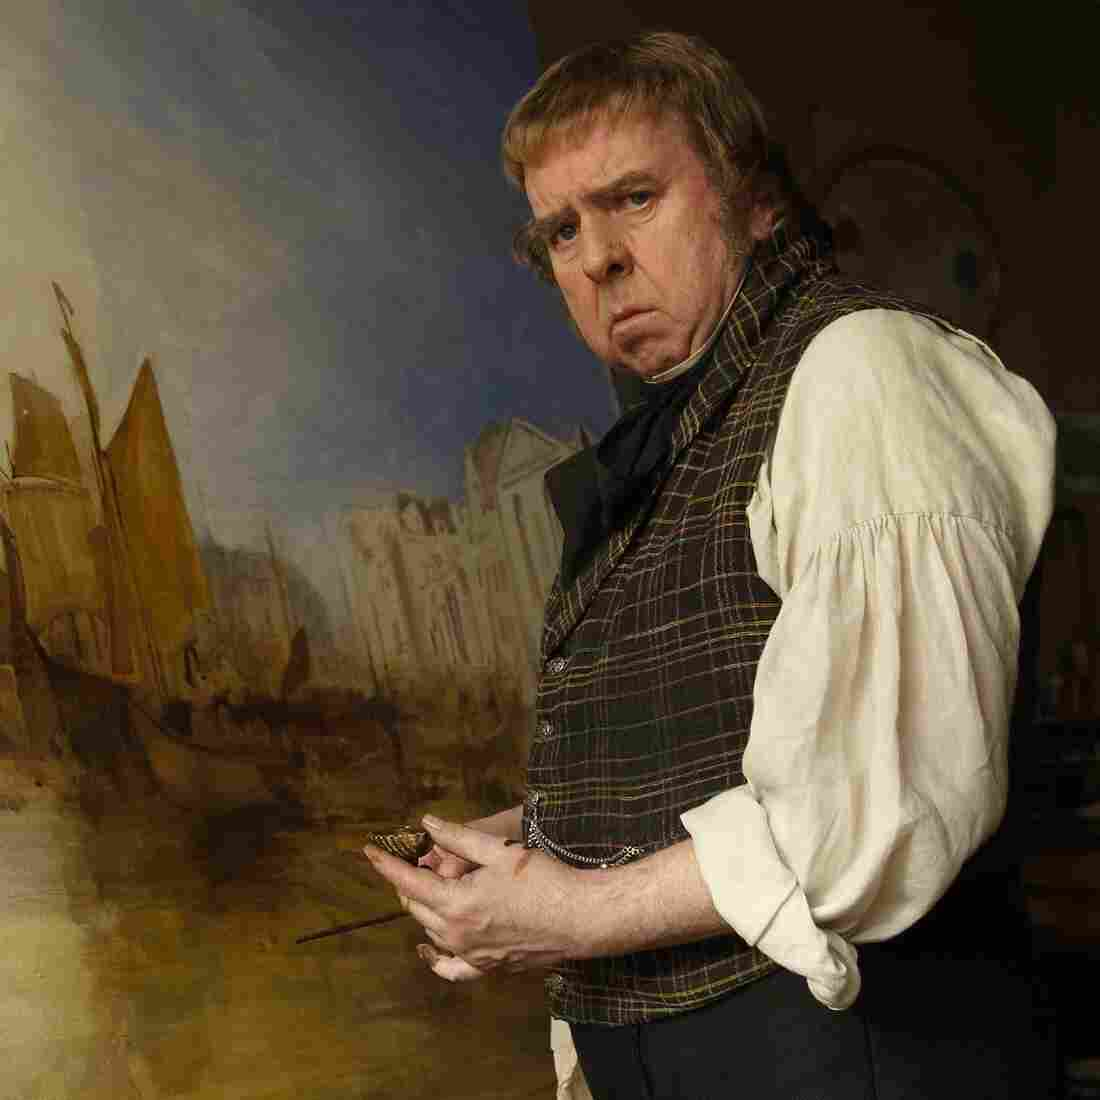 Timothy Spall as the British painter J.M.W. Turner in Mike Leigh's Mr. Turner, whose score is nominated for an Oscar.